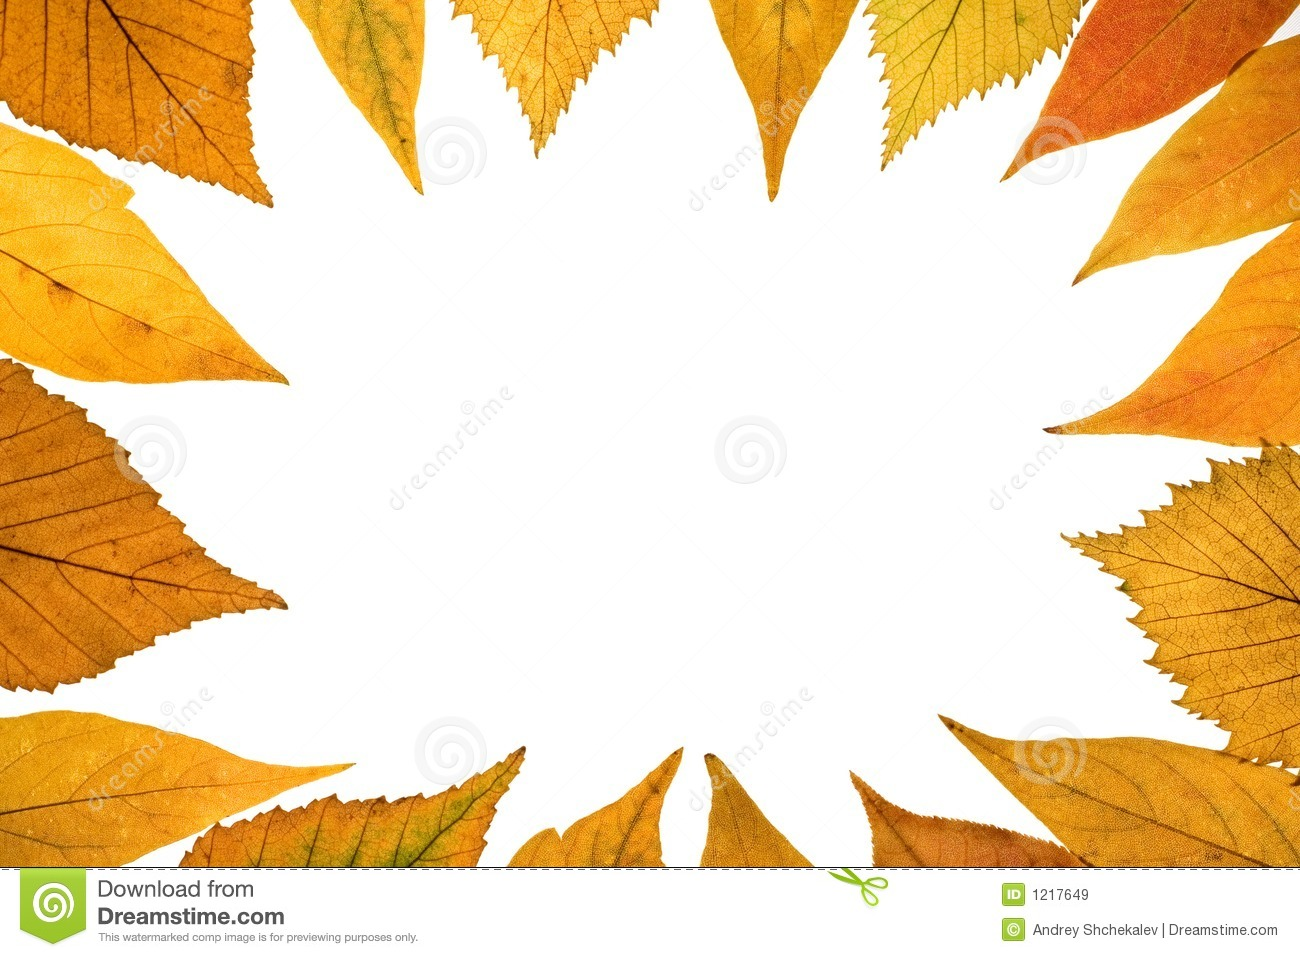 fall background royalty free stock images image 1217649 autumn leaf clip art transparent background autumn leaf clip art